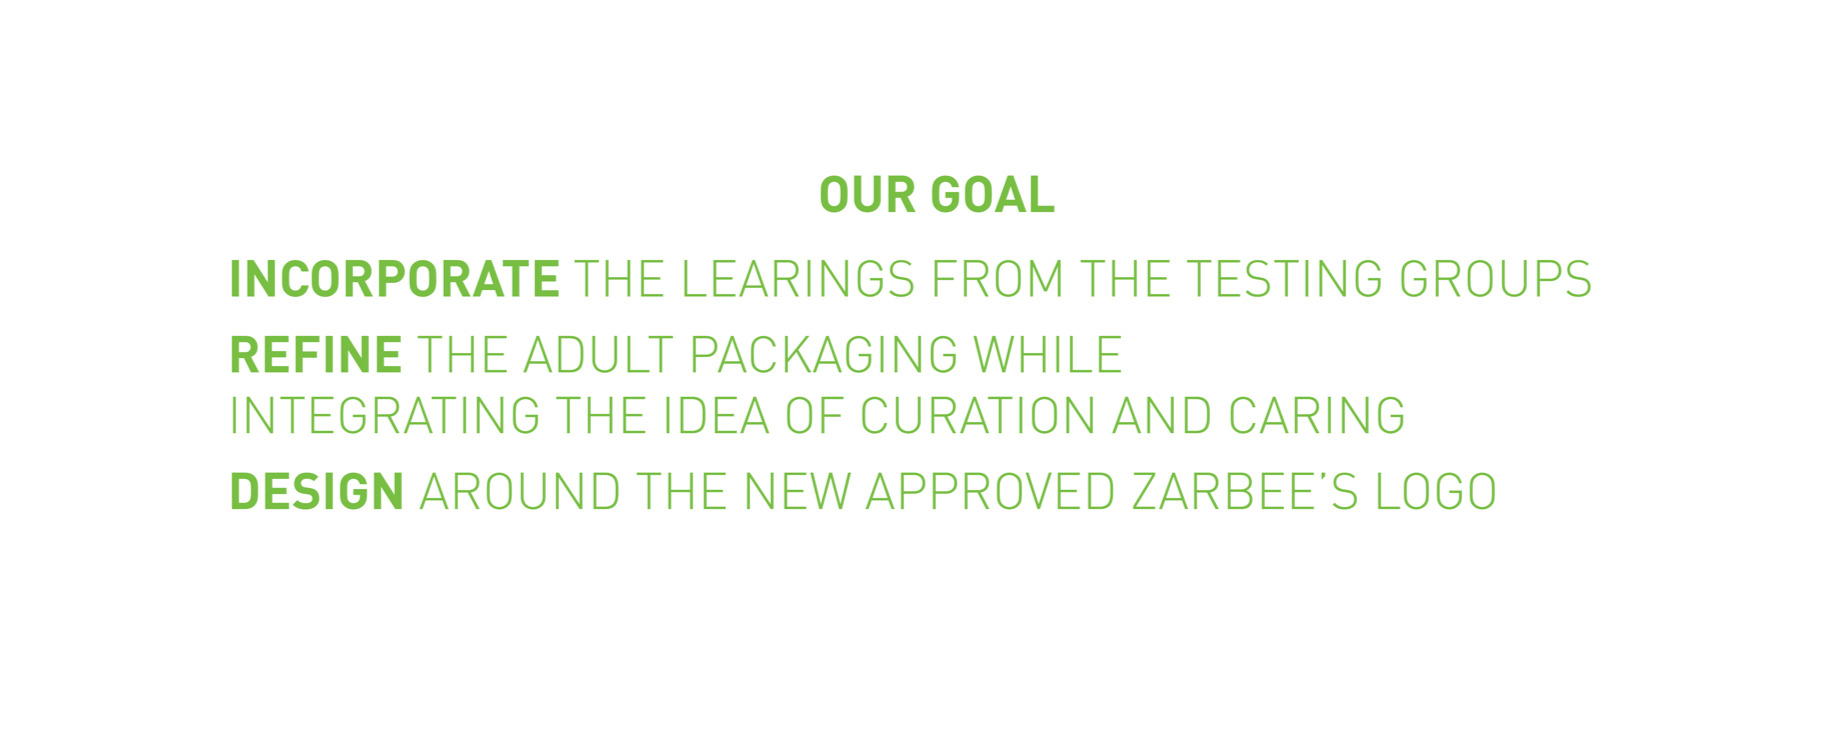 OUR GOAL  — Incorporate the learnings from the testing groups, Refine the adult package while integrating the ideas of curation and caring, Design around the new approved Zarbee's Logo